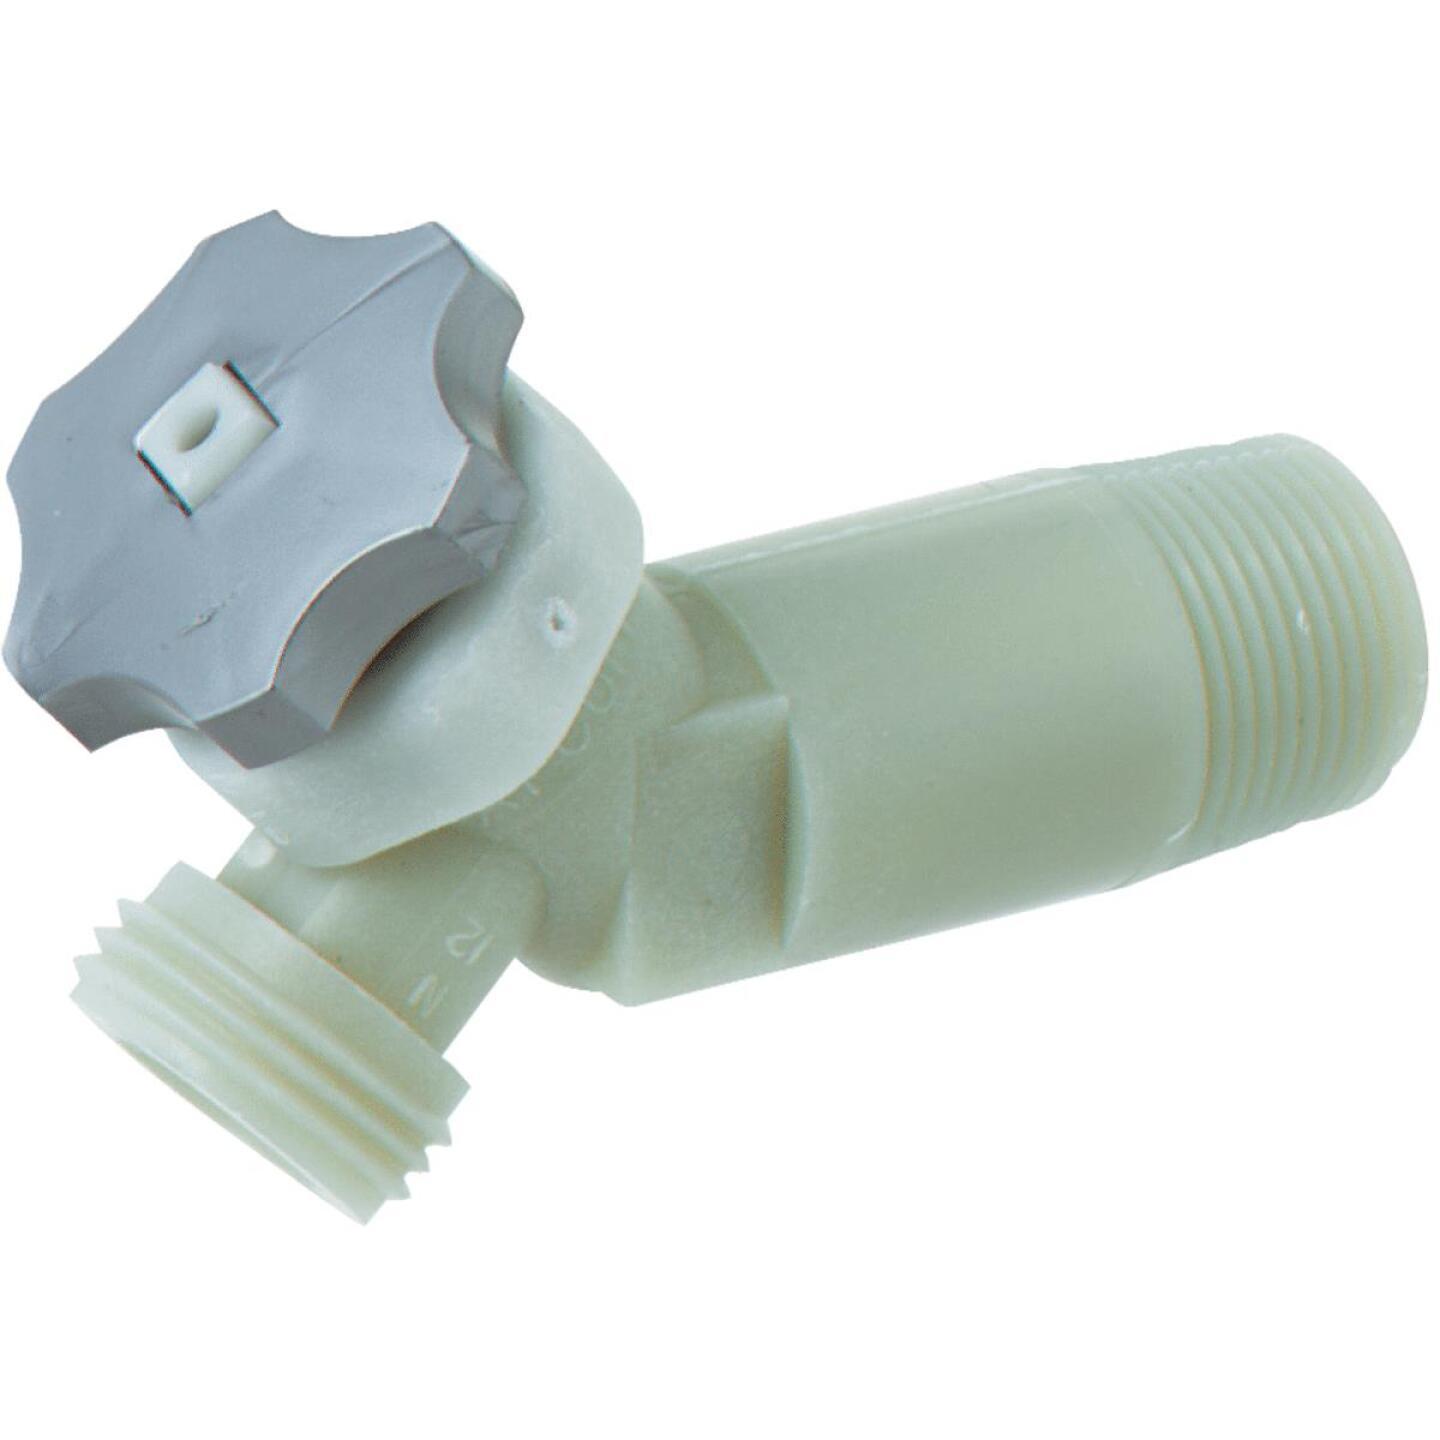 Reliance 2 In. Shank Water Heater Drain Valve Image 1